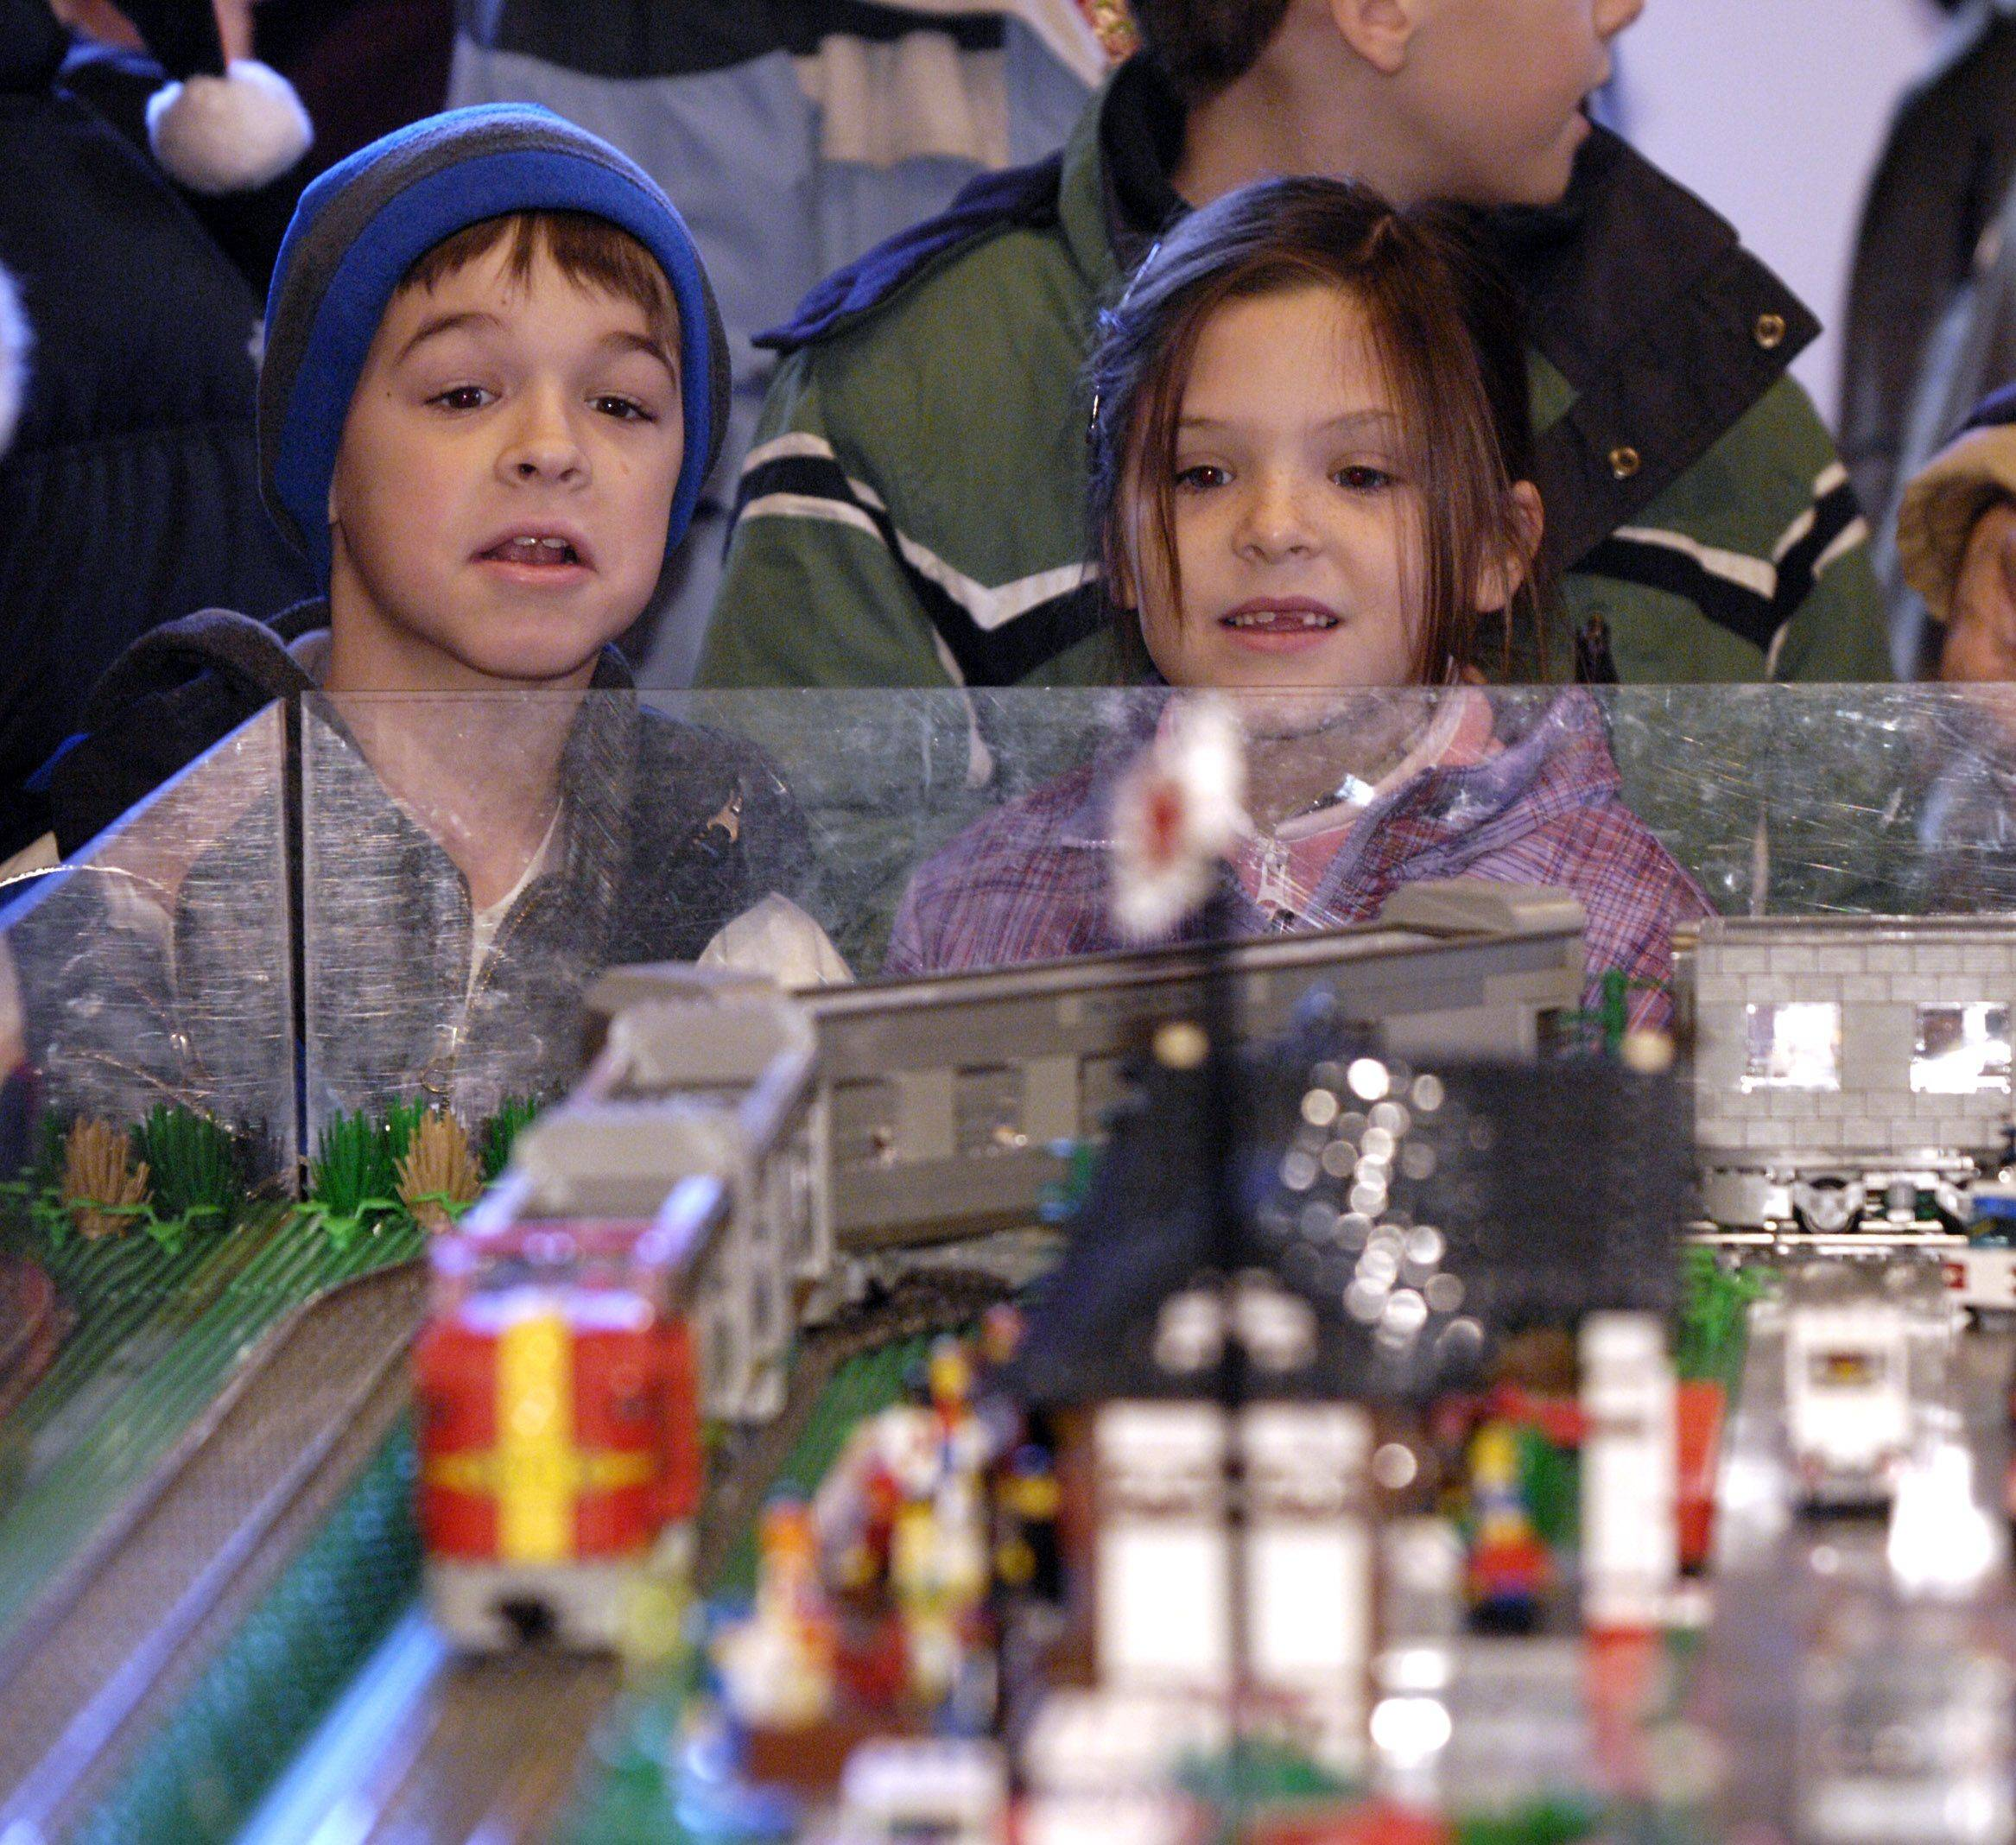 Cousins Nathan Riess, 6, and Emma Liptak, 8, check out one of the many train layouts Sunday during the Lego Train Show at Cantigny Park in Wheaton.